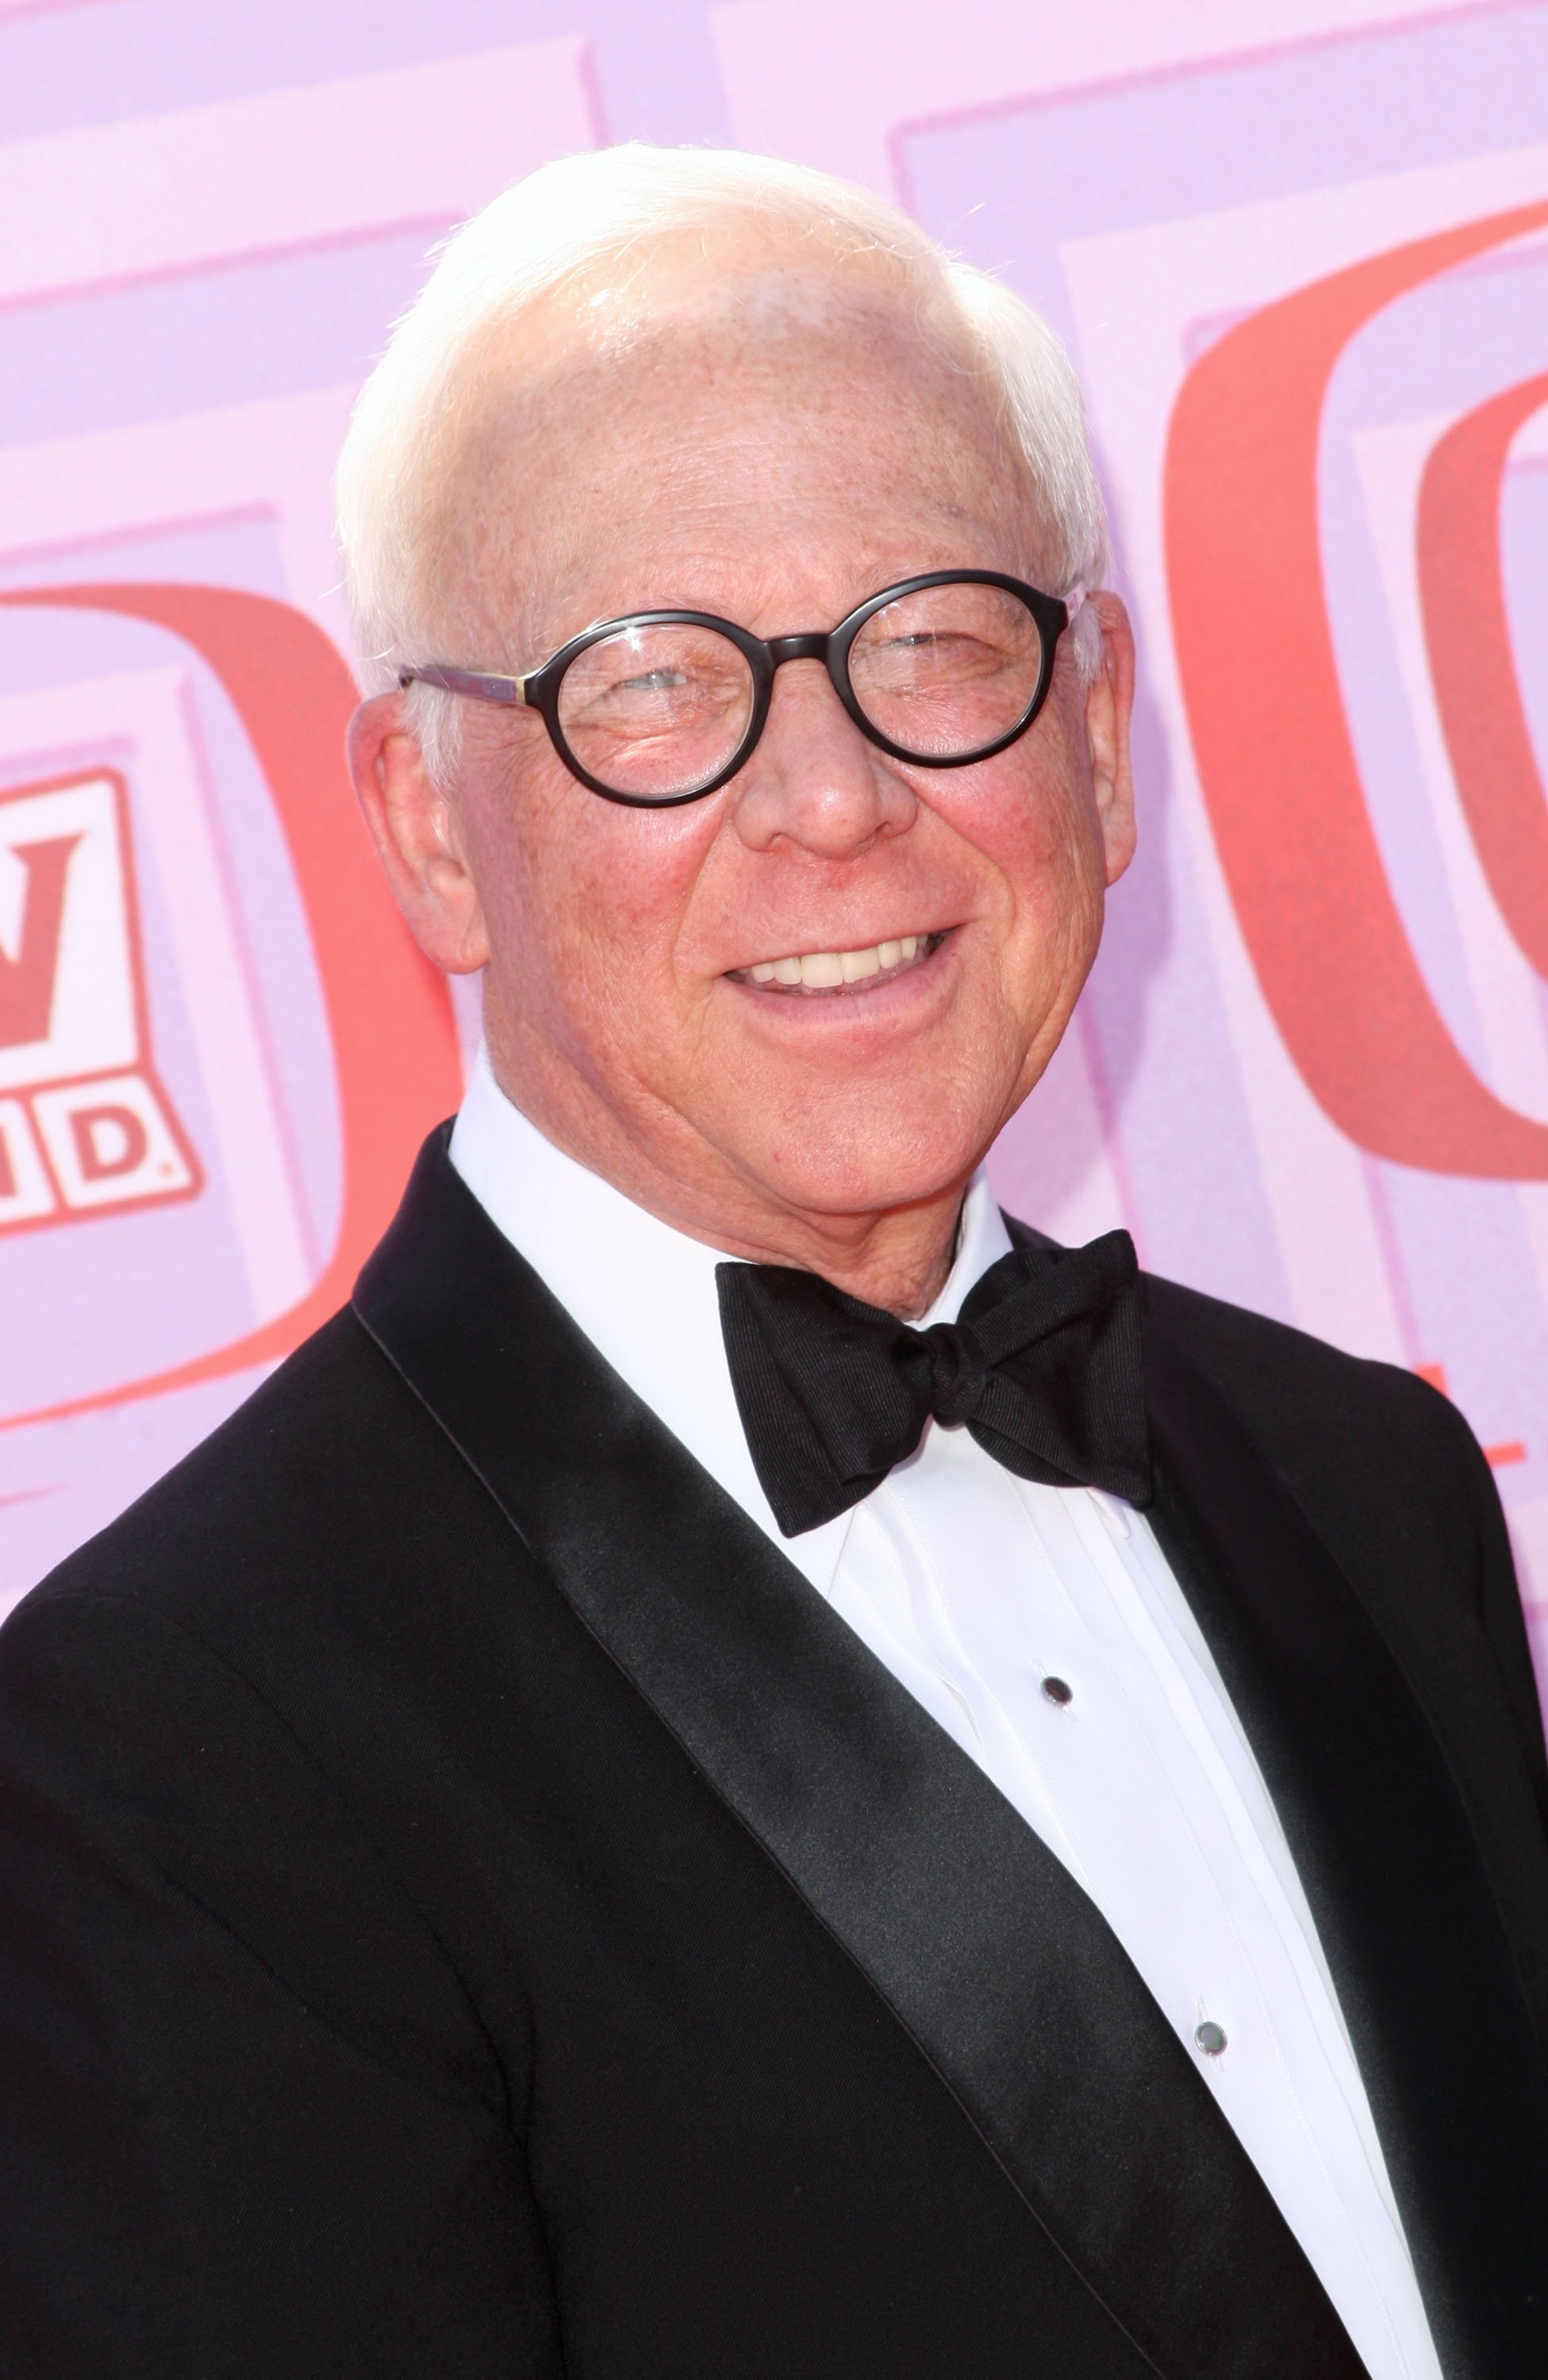 William Christopher arrives at the 7th Annual TV Land Awards held at Gibson Amphitheatre on April 19, 2009. | Source: Getty Images